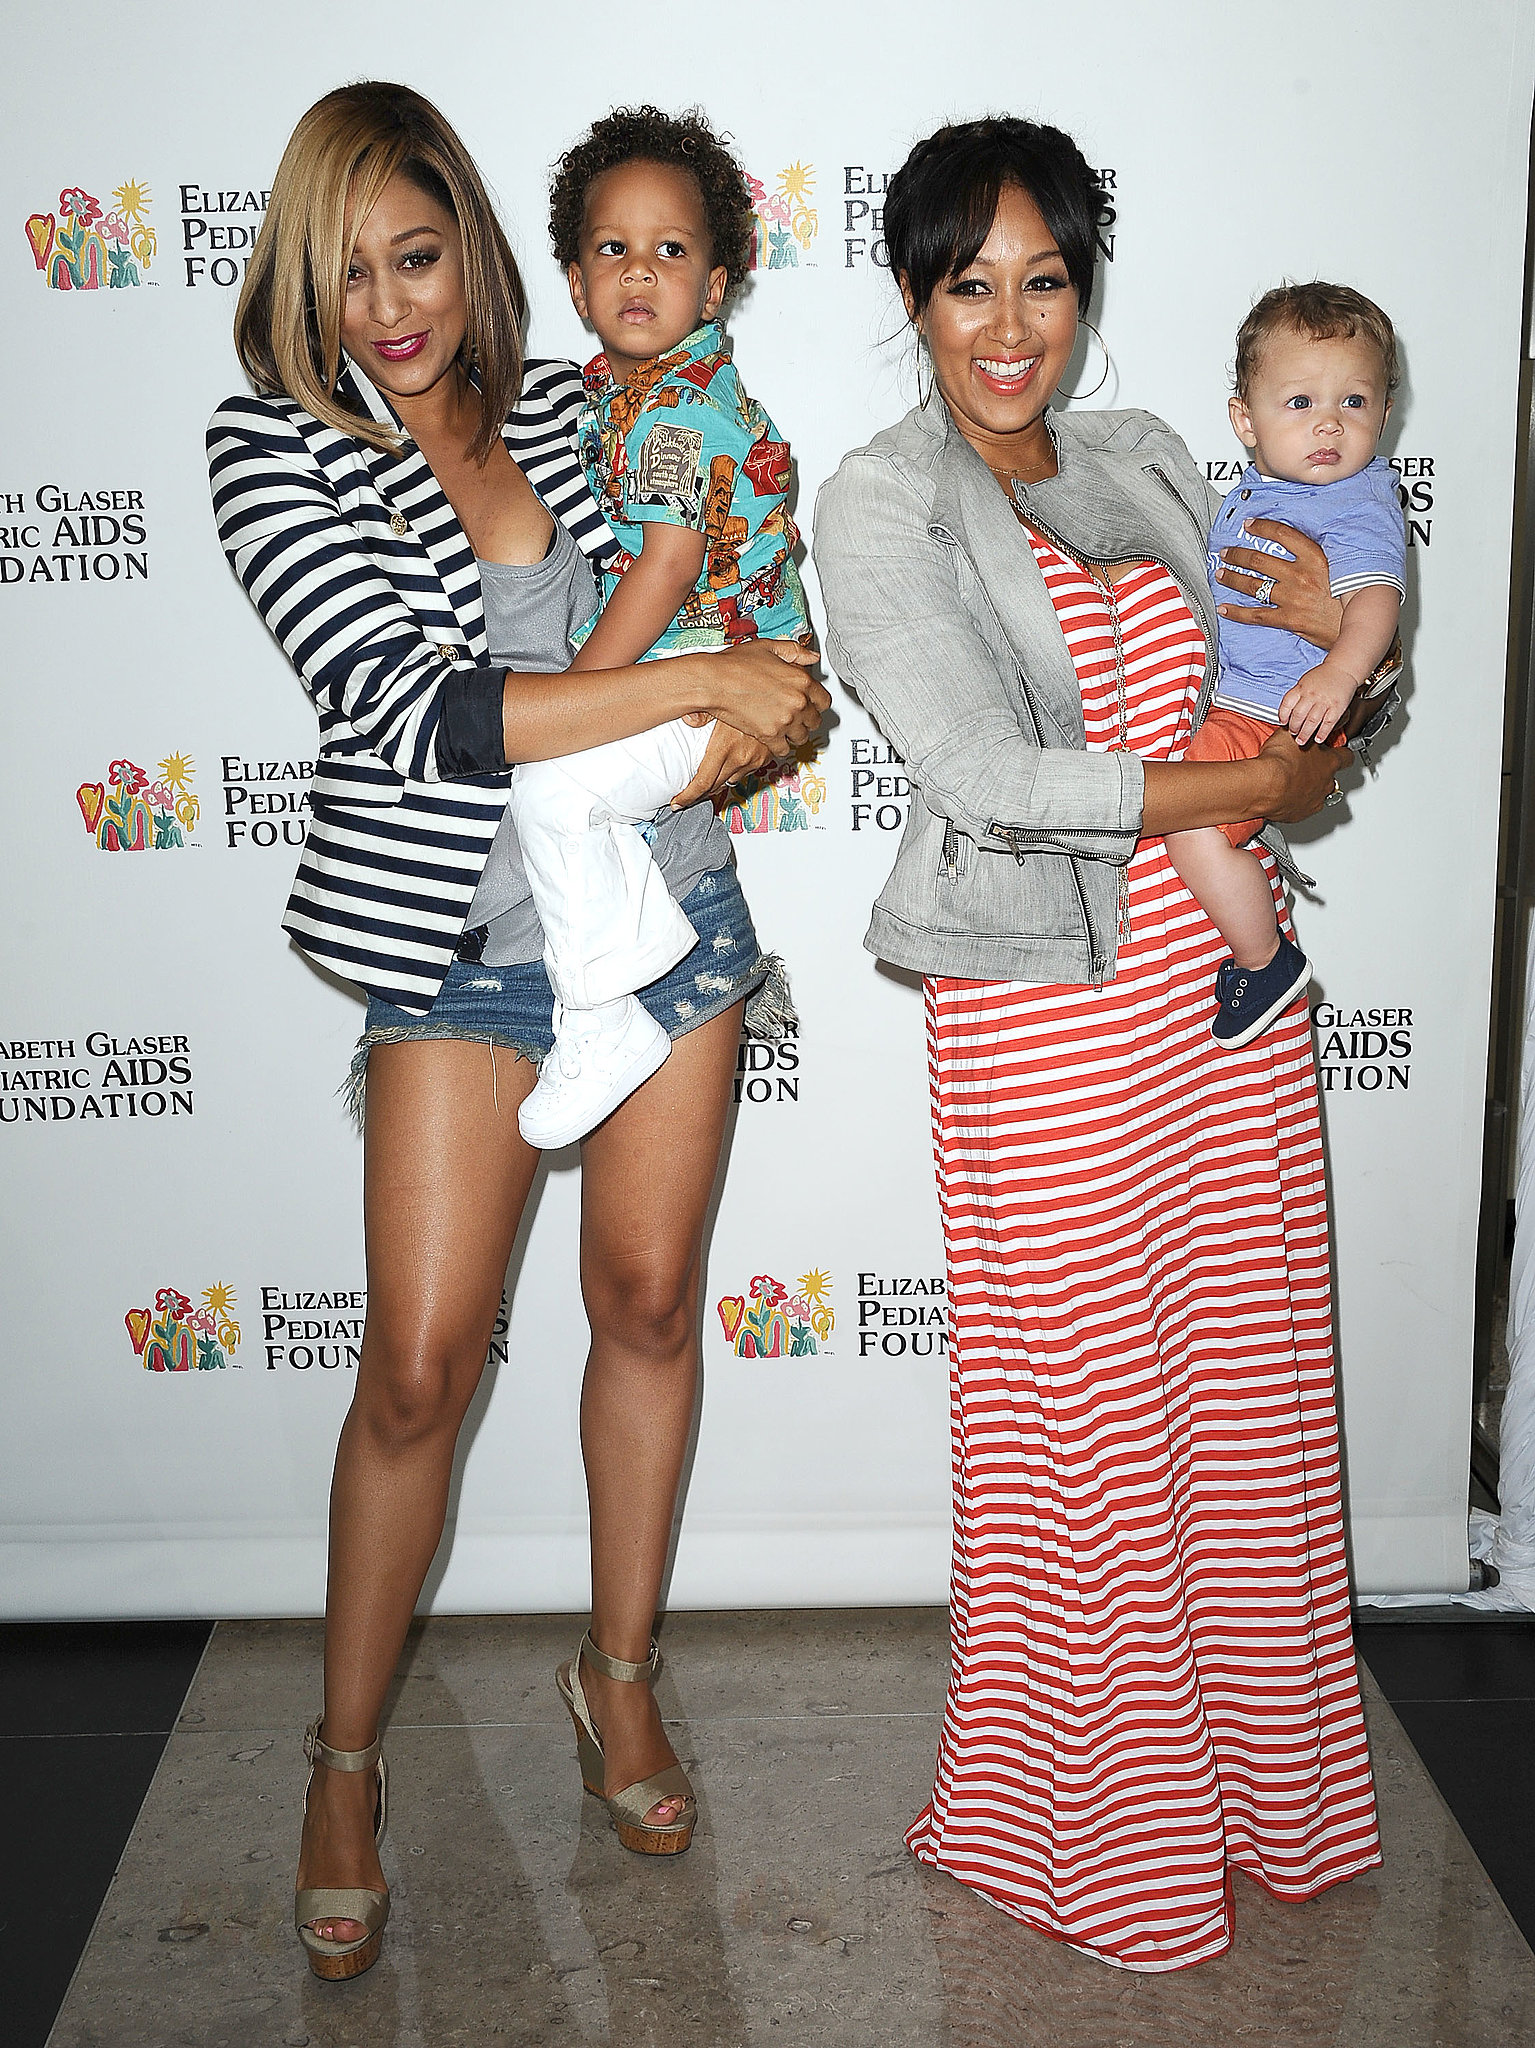 Tia Mowry and Tamera Mowry brought their babies with them.